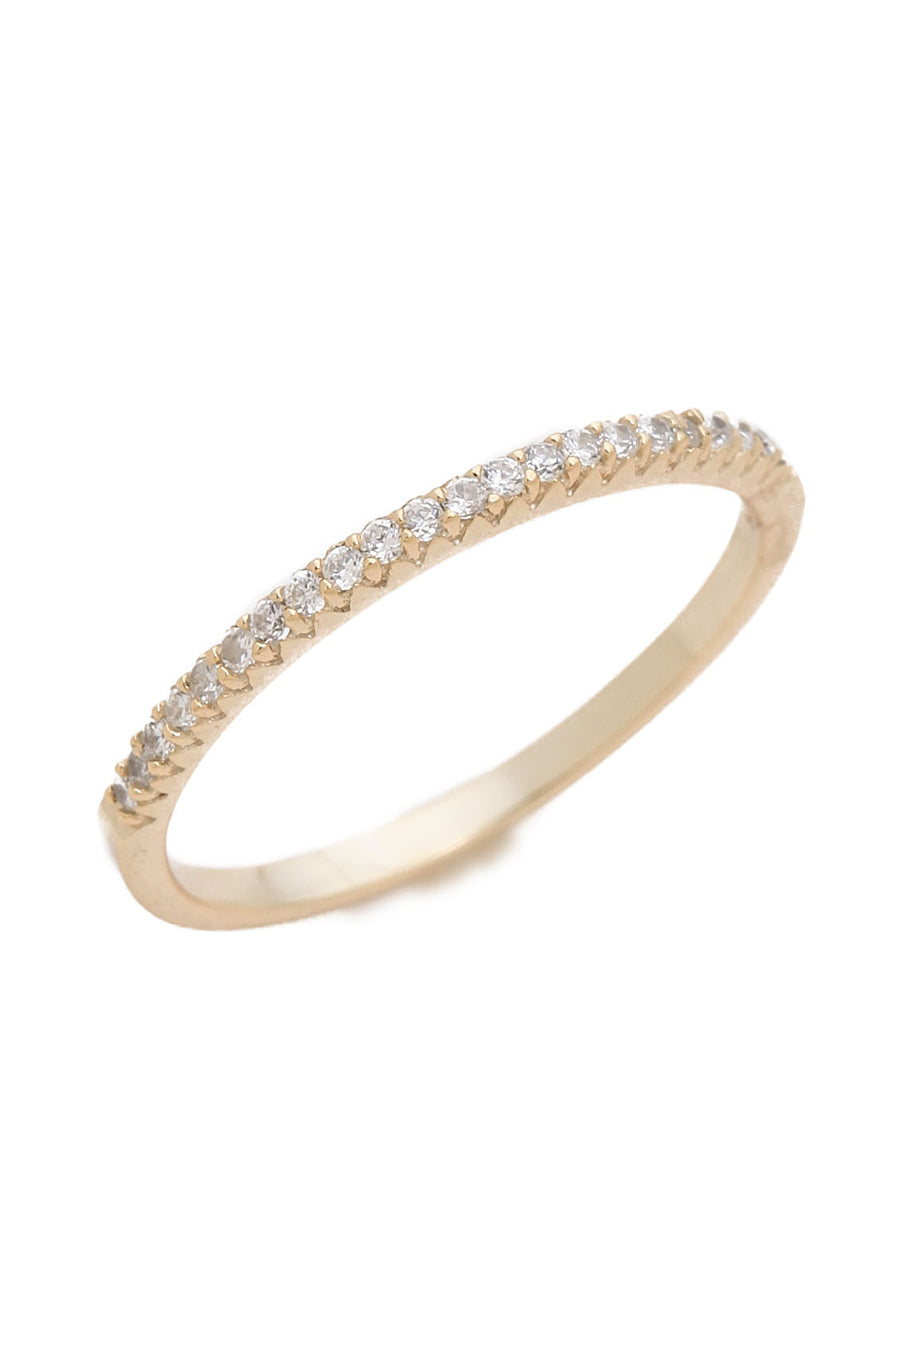 Diamond Bar Ring - YG - Pavilion